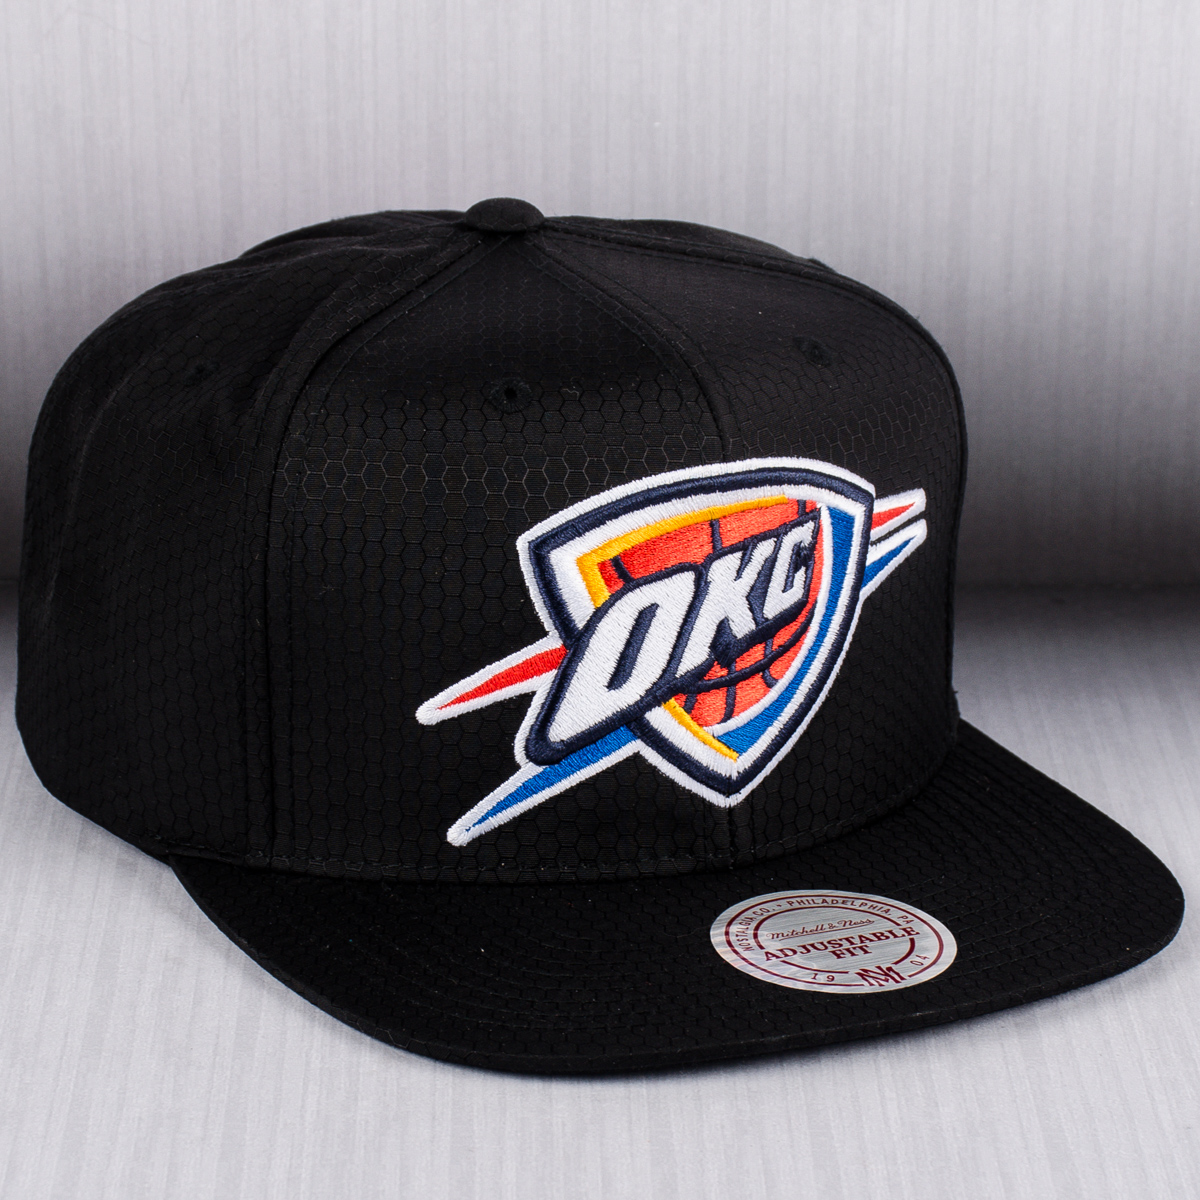 timeless design af600 08ac6 Mitchell   Ness NBA Oklahoma City Thunder Black Ripstop Honeycomb Snapback  Cap - NBA Shop OKC Thunder Merchandise - Superfanas.lt